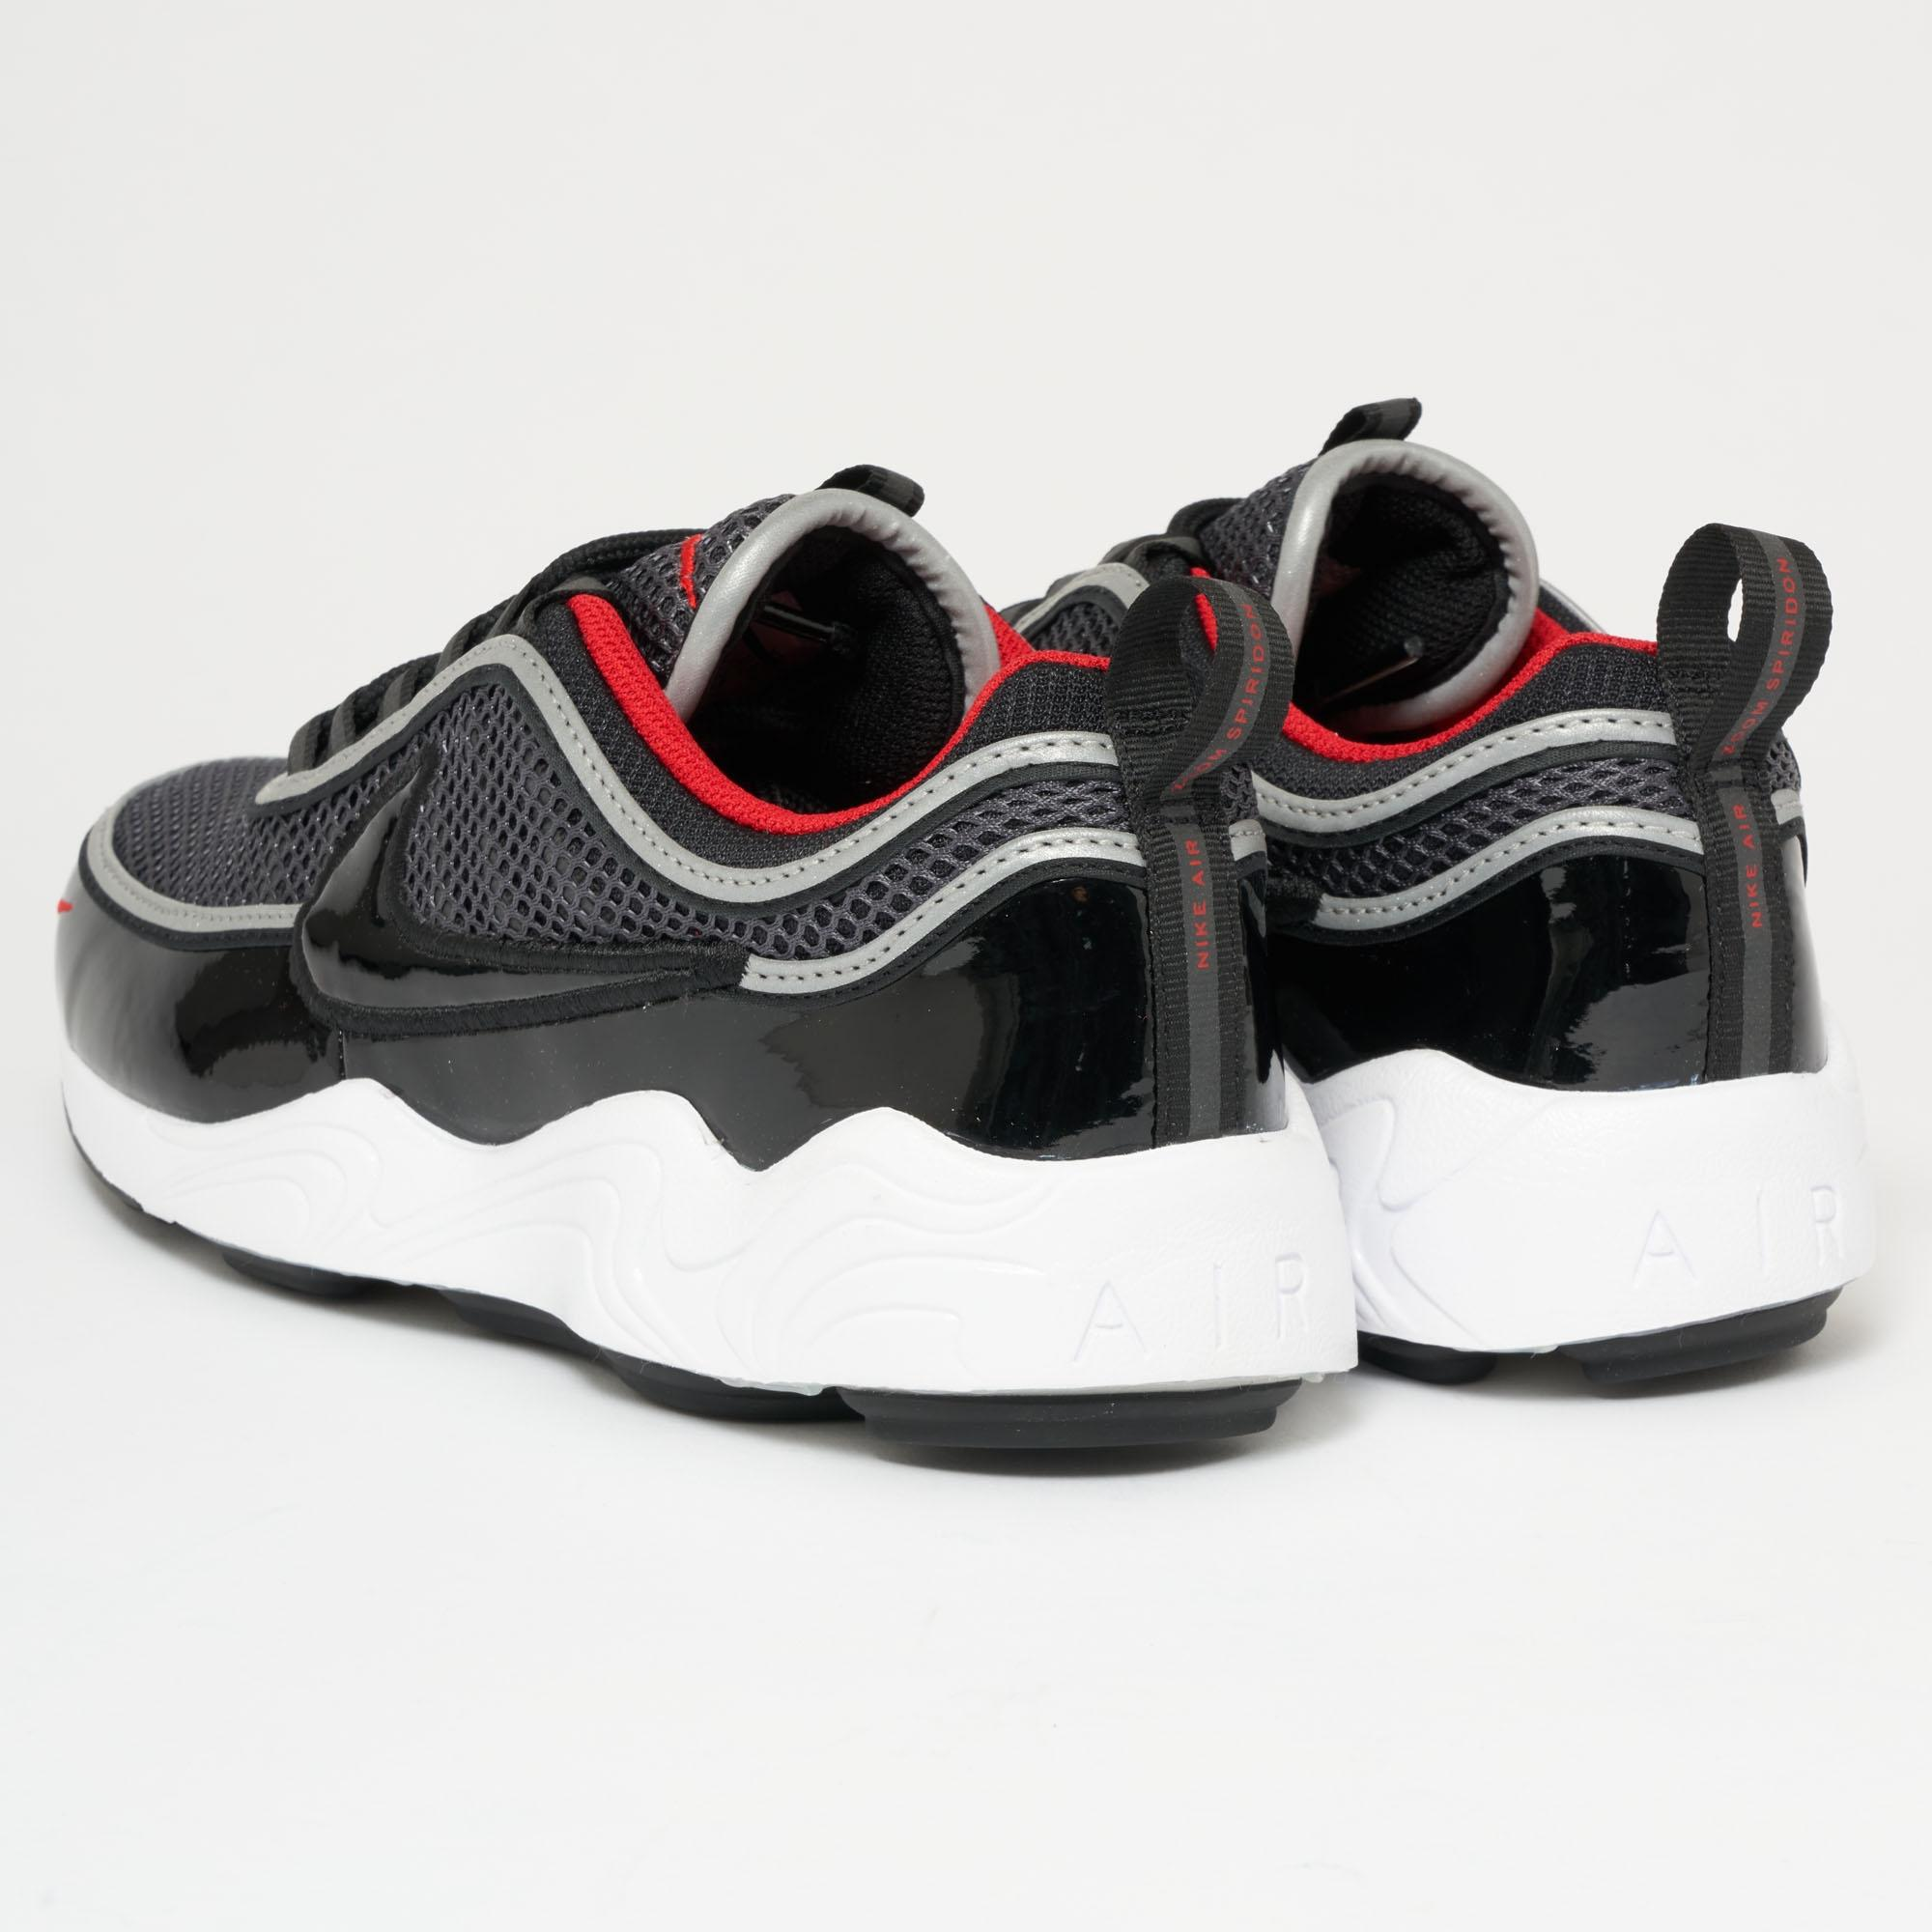 buy online 50f02 4a3a5 Nike Air Zoom Spiridon  16 - Black, University Red   White in Black ...